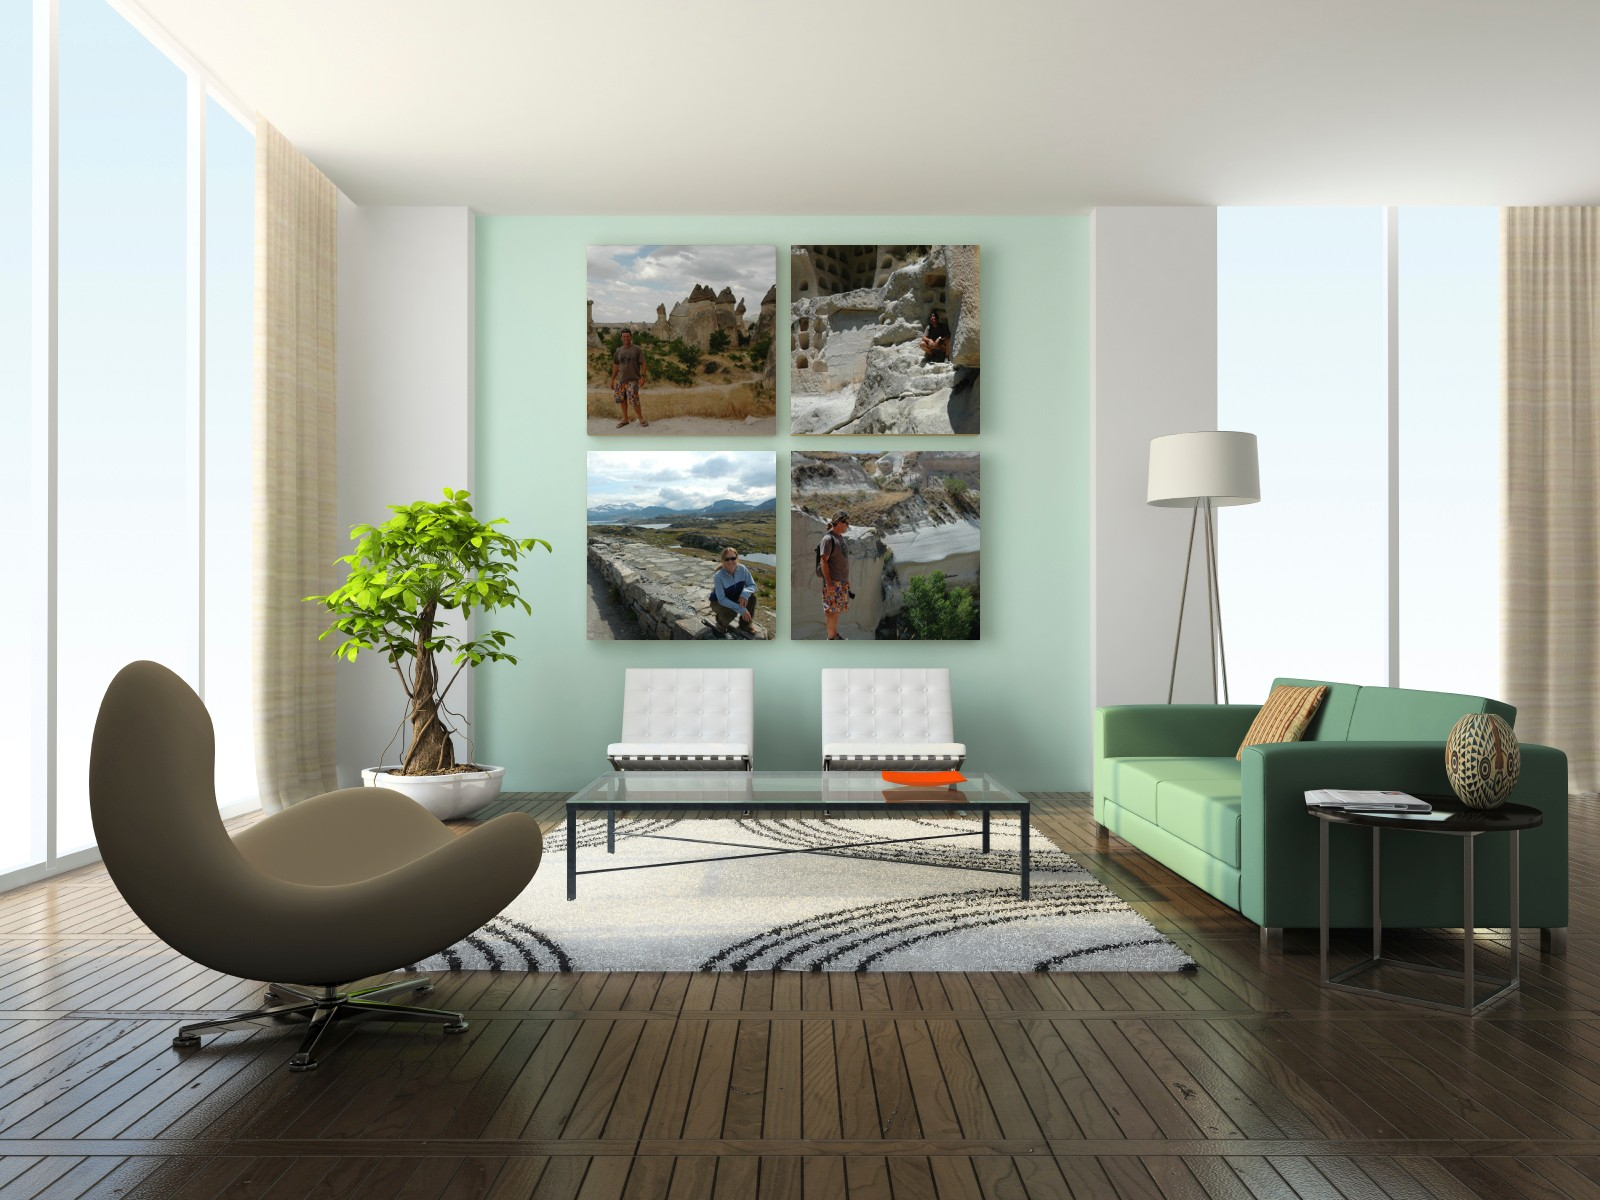 4 square canvas prints hanging on wall in home